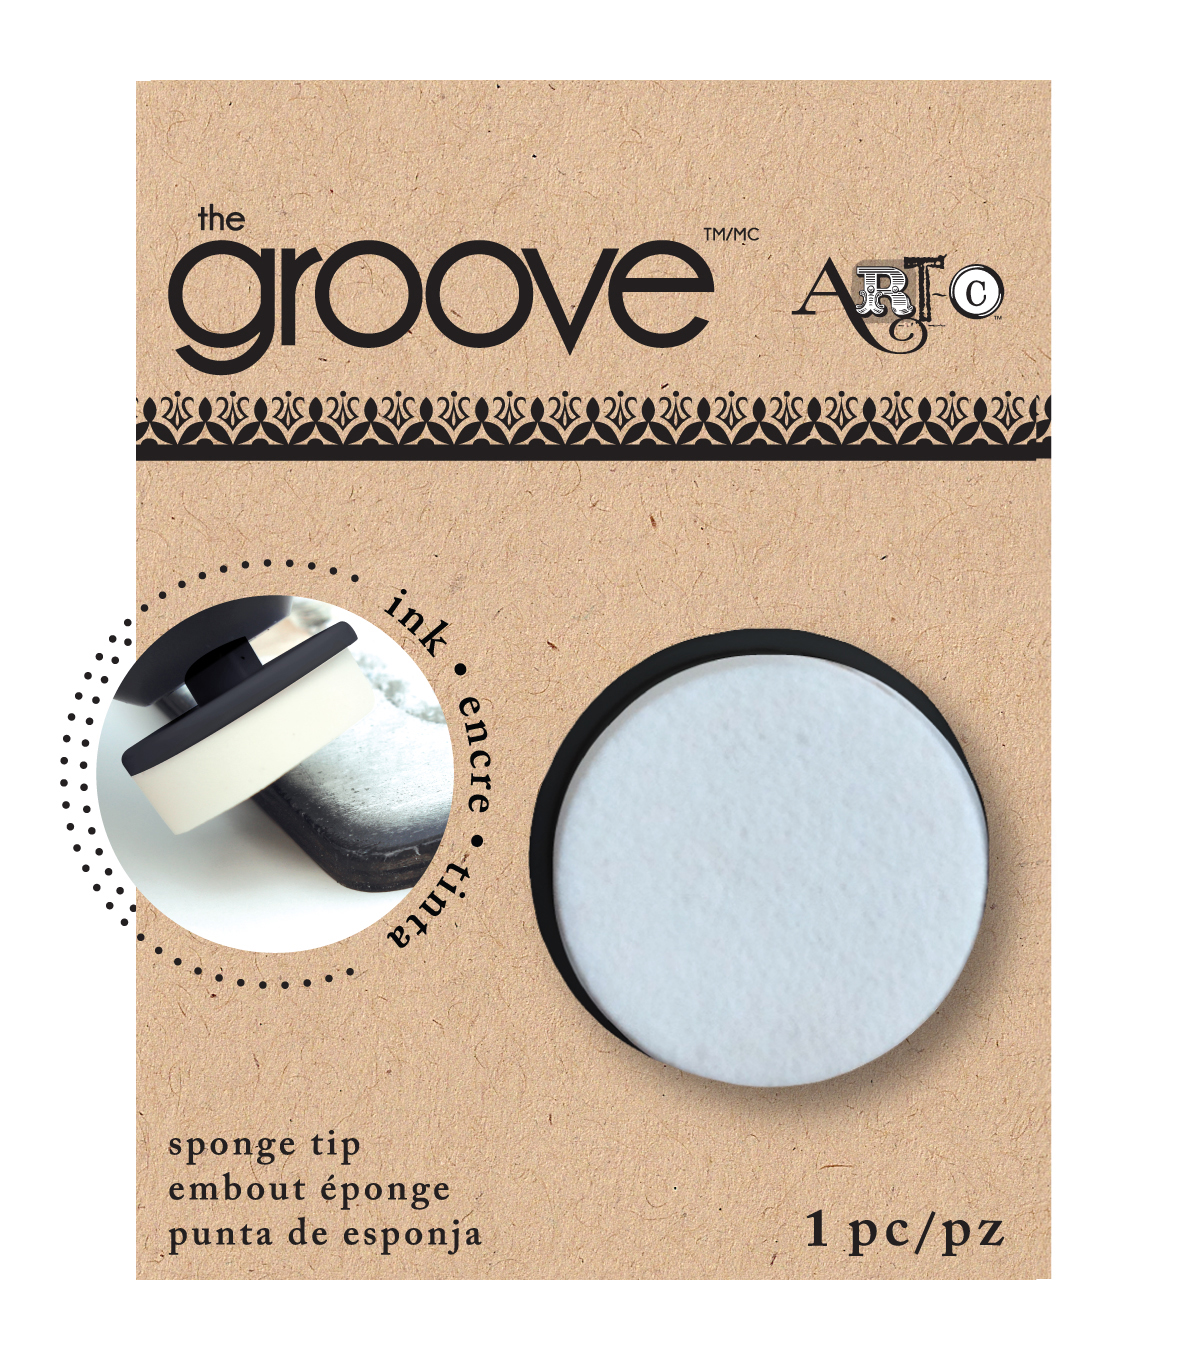 Groove Tool Replacement Tip Sponge